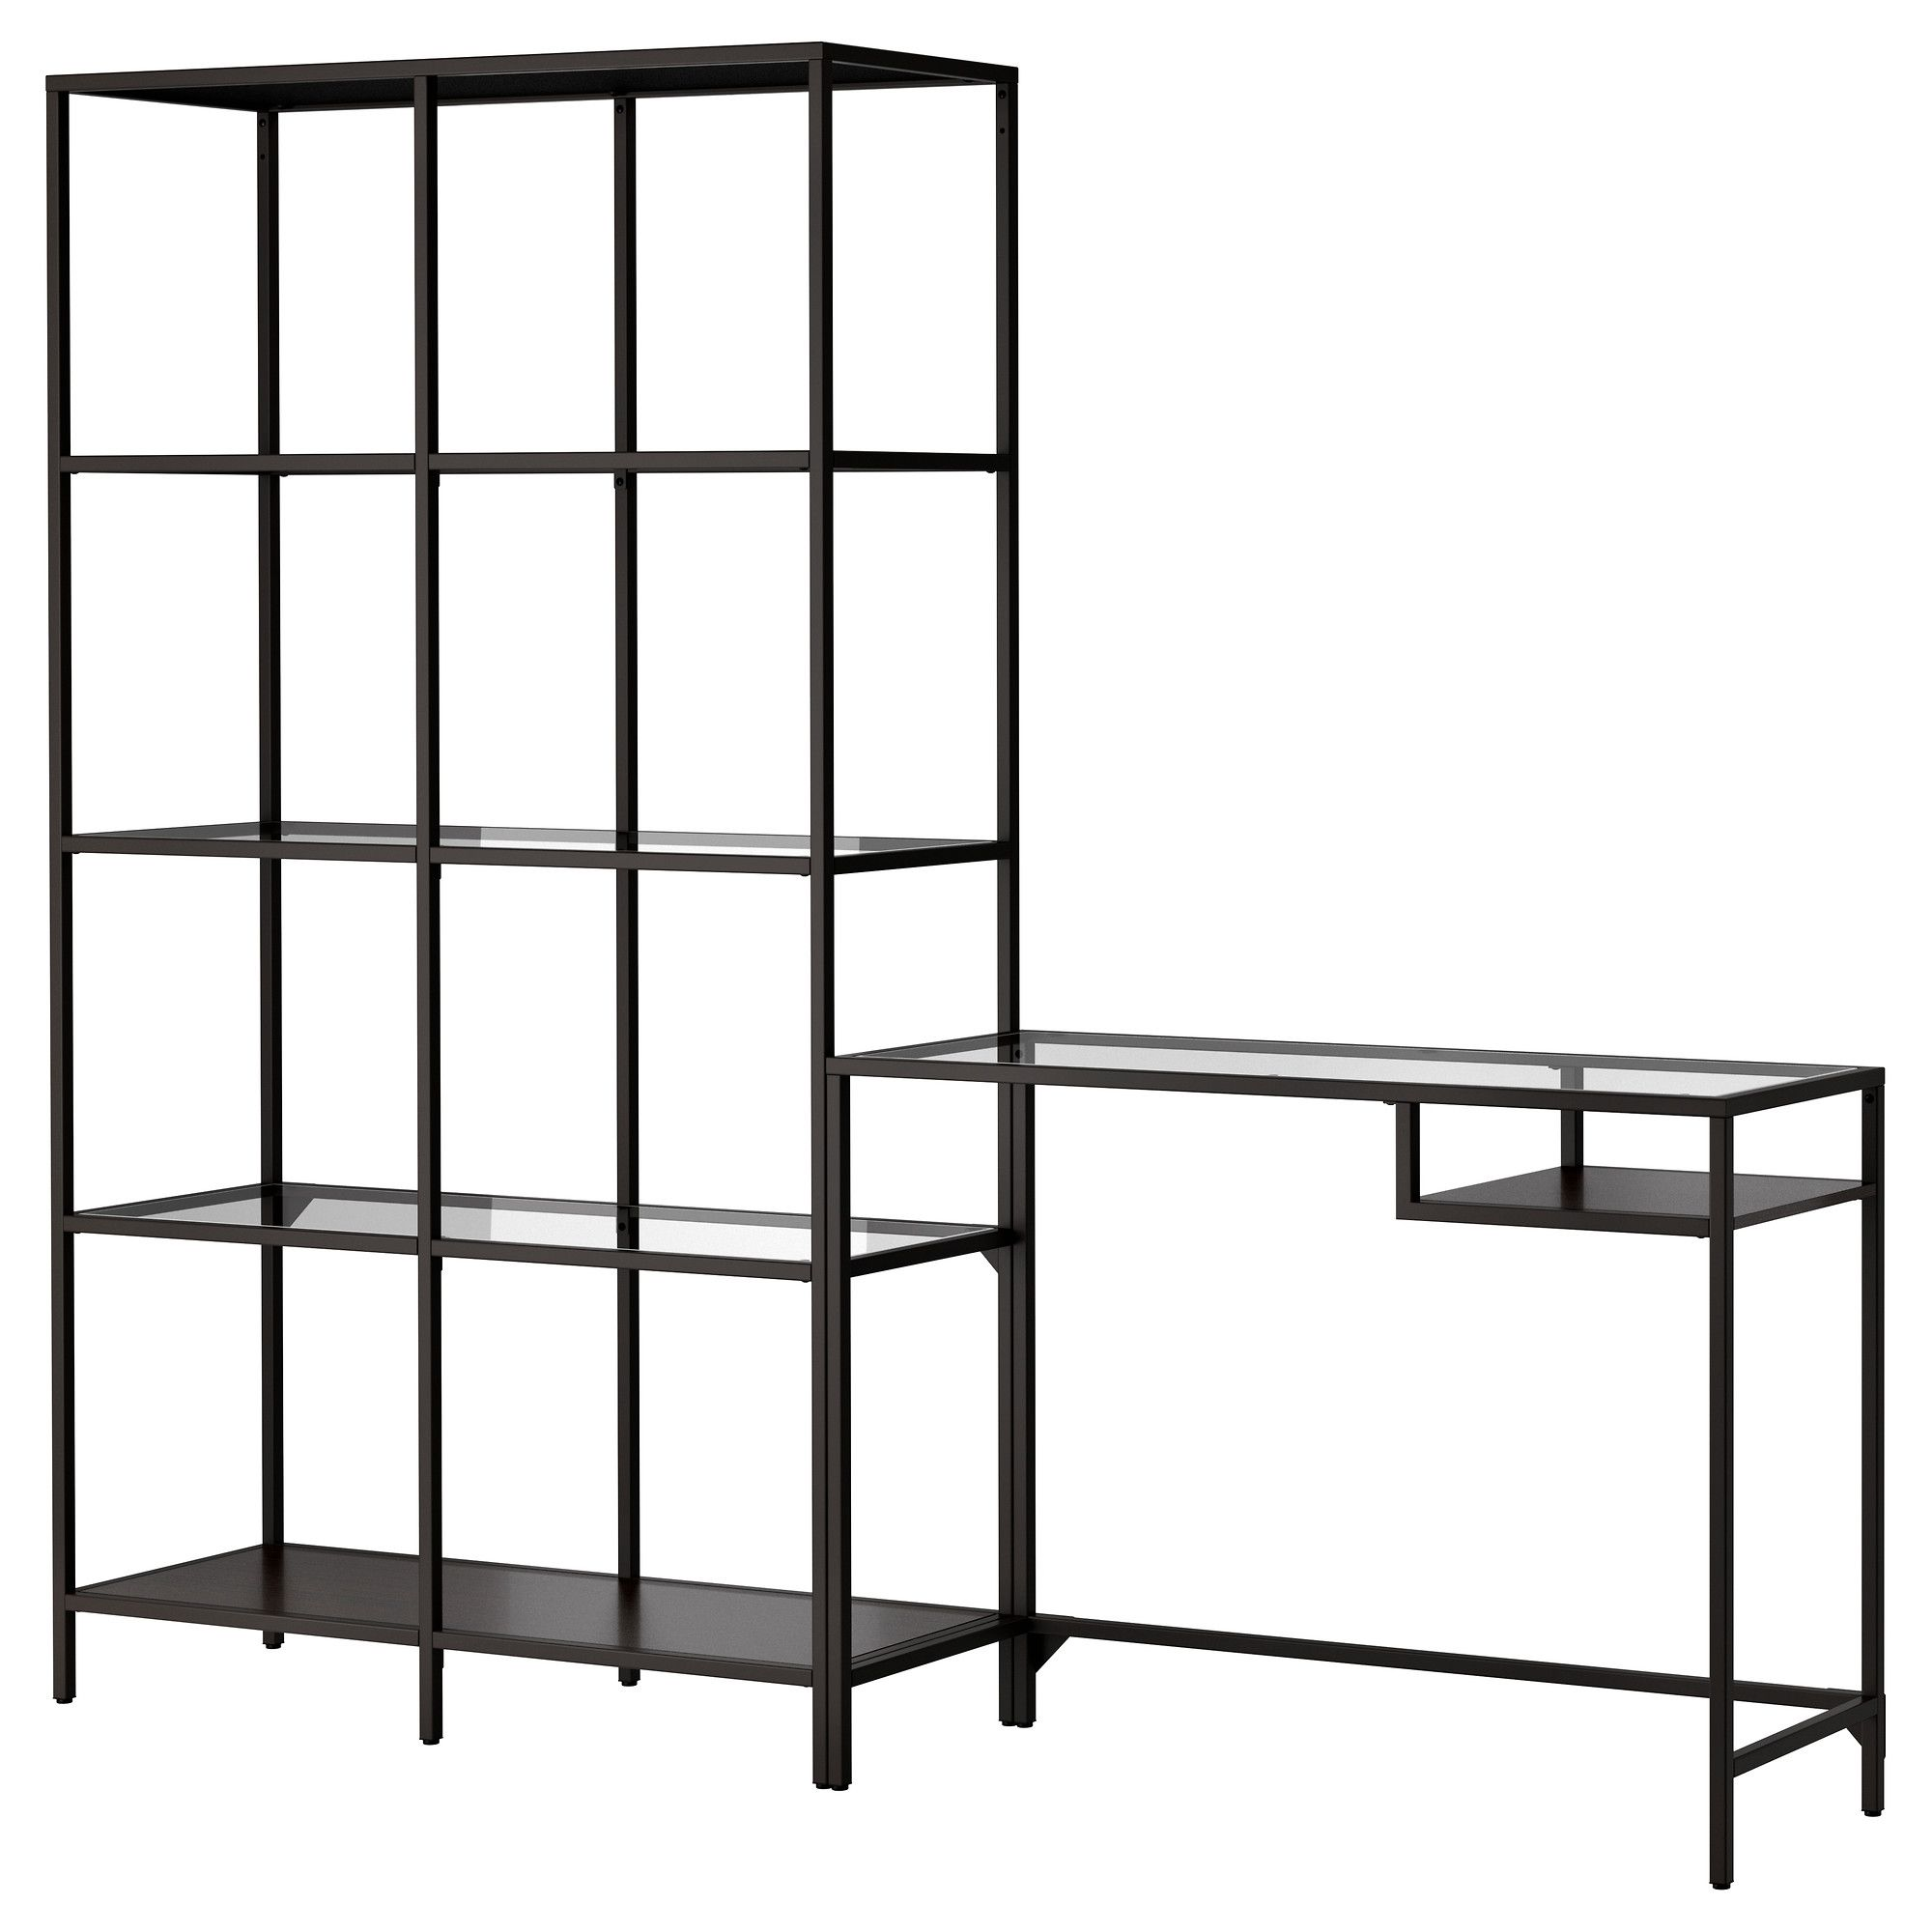 unit menards of size full bookcase fresh unique bookshelf awesome amazing steel shelving ikea shelves metal